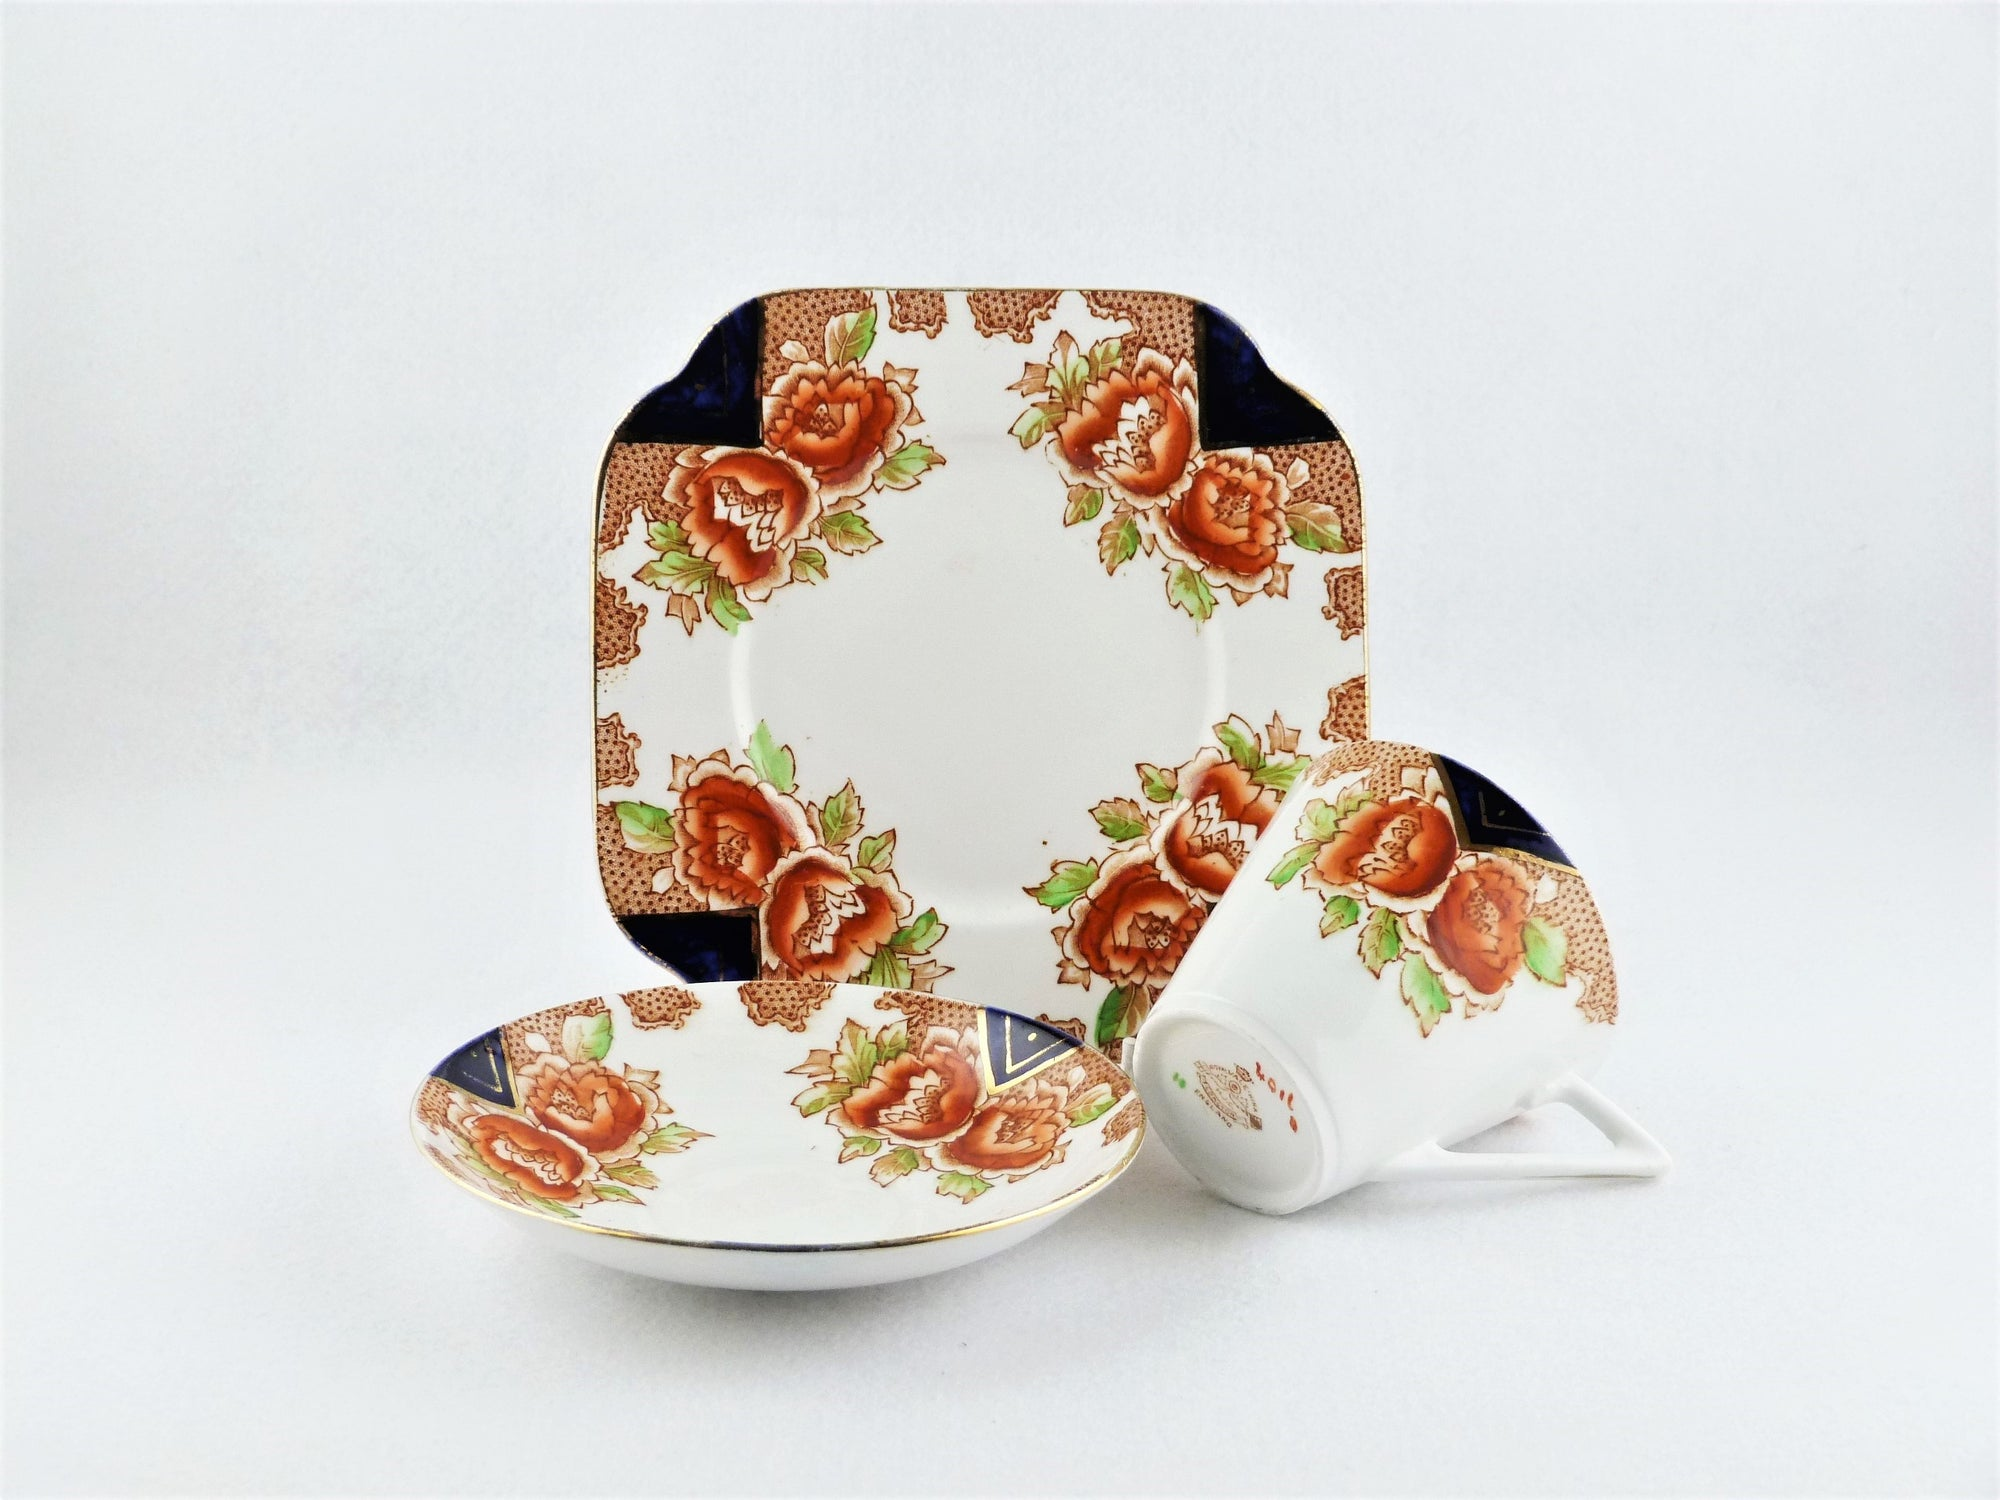 Royal Vale Cup, Saucer and Plate, English China, 1928 -1937